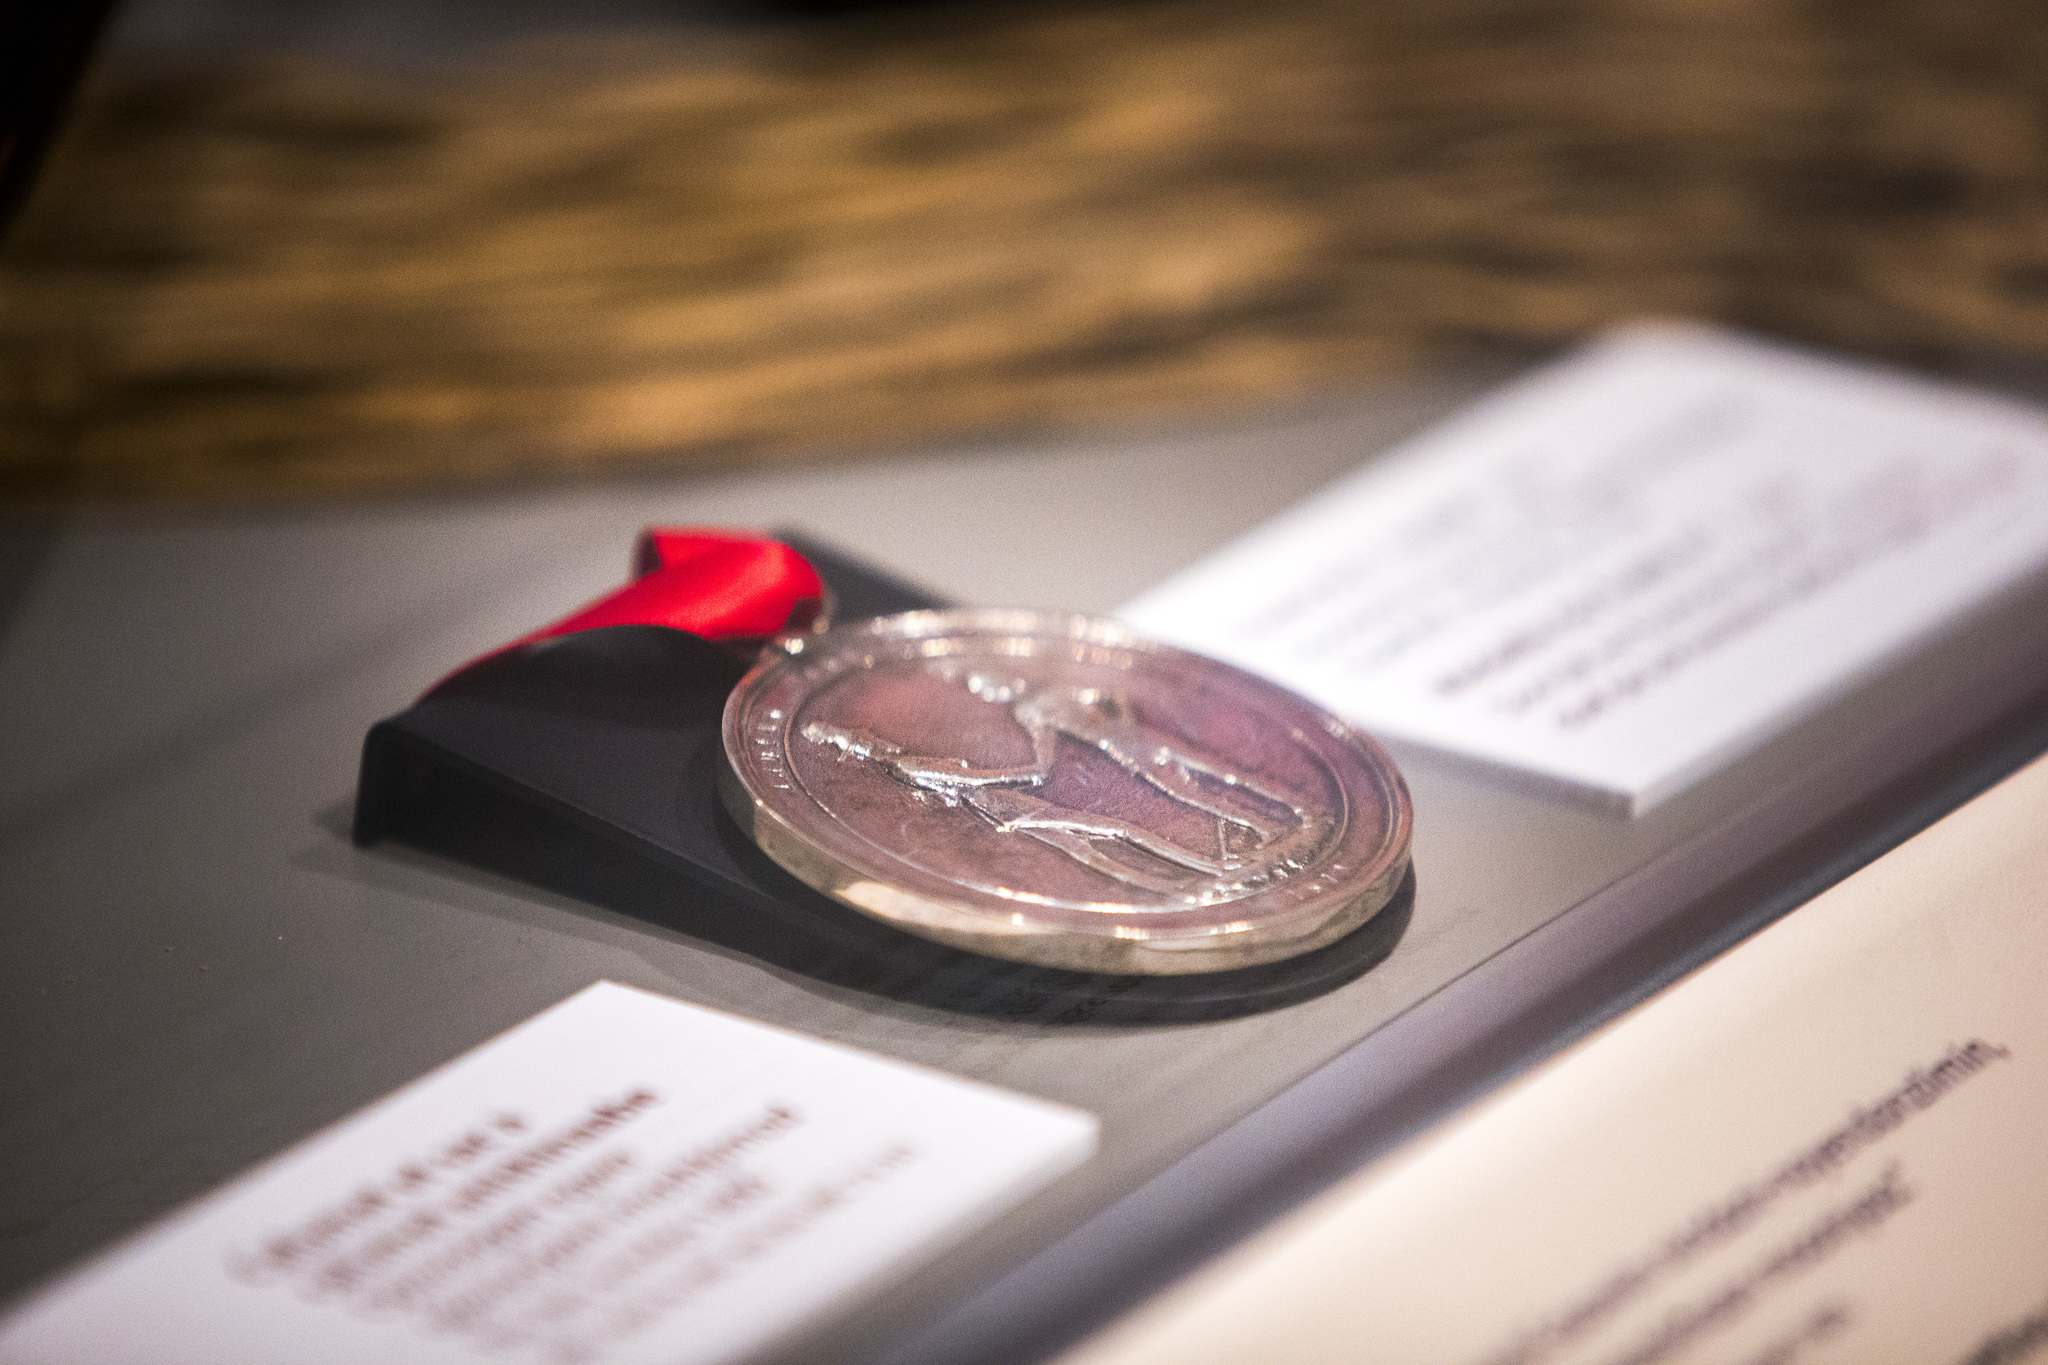 Medals on display at the Manitoba Museum confirm treaty promises. The medals symbolize Canada's promises to First Nations peoples. (Mikaela MacKenzie / Winnipeg Free Press)